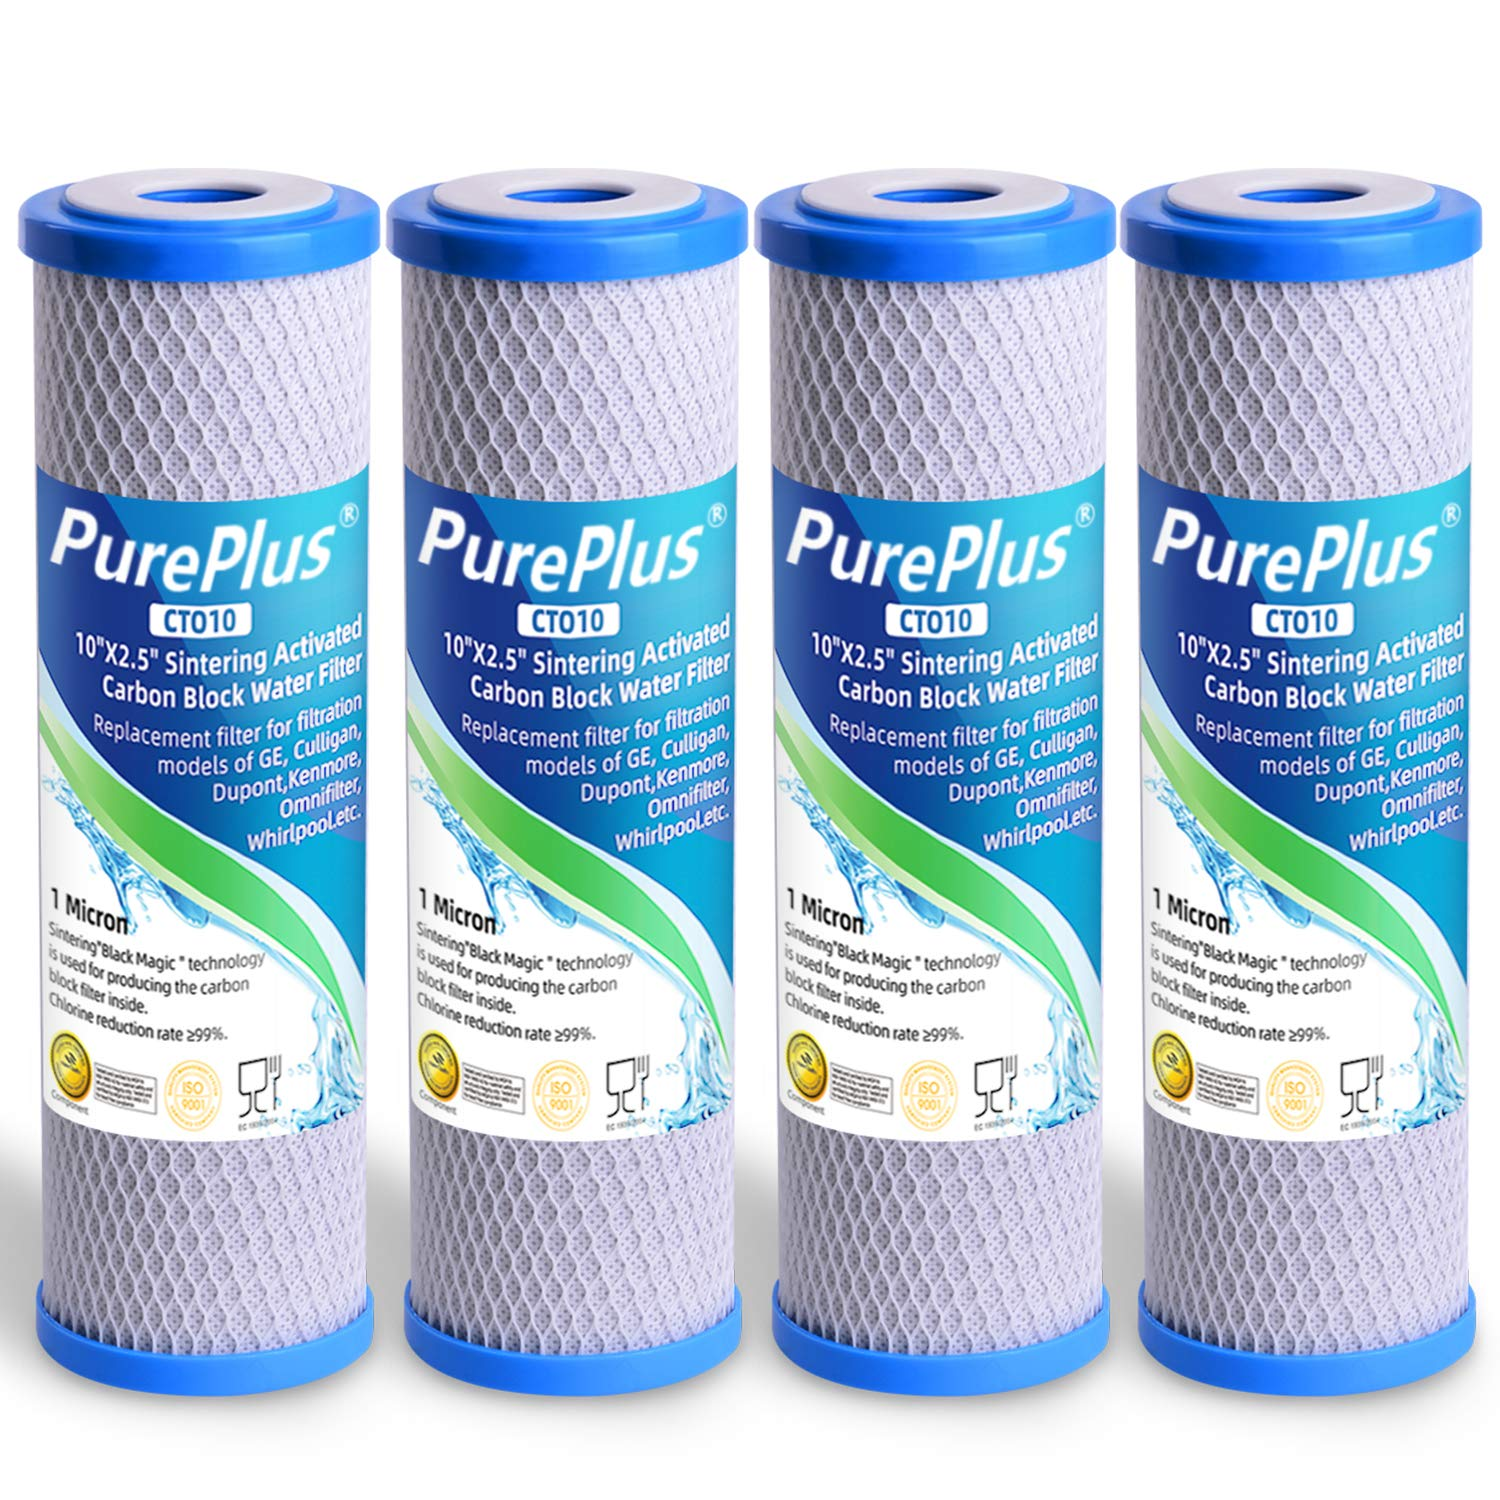 PUREPLUS 1 Micron 2.5'' x 10'' Whole House CTO Carbon Sediment Water Filter Replacement Cartridge Compatible with RO Unit, Dupont WFPFC8002, WFPFC9001, FXWTC, SCWH-5, WHEF-WHWC, WHCF-WHWC, 4 Pack by PUREPLUS